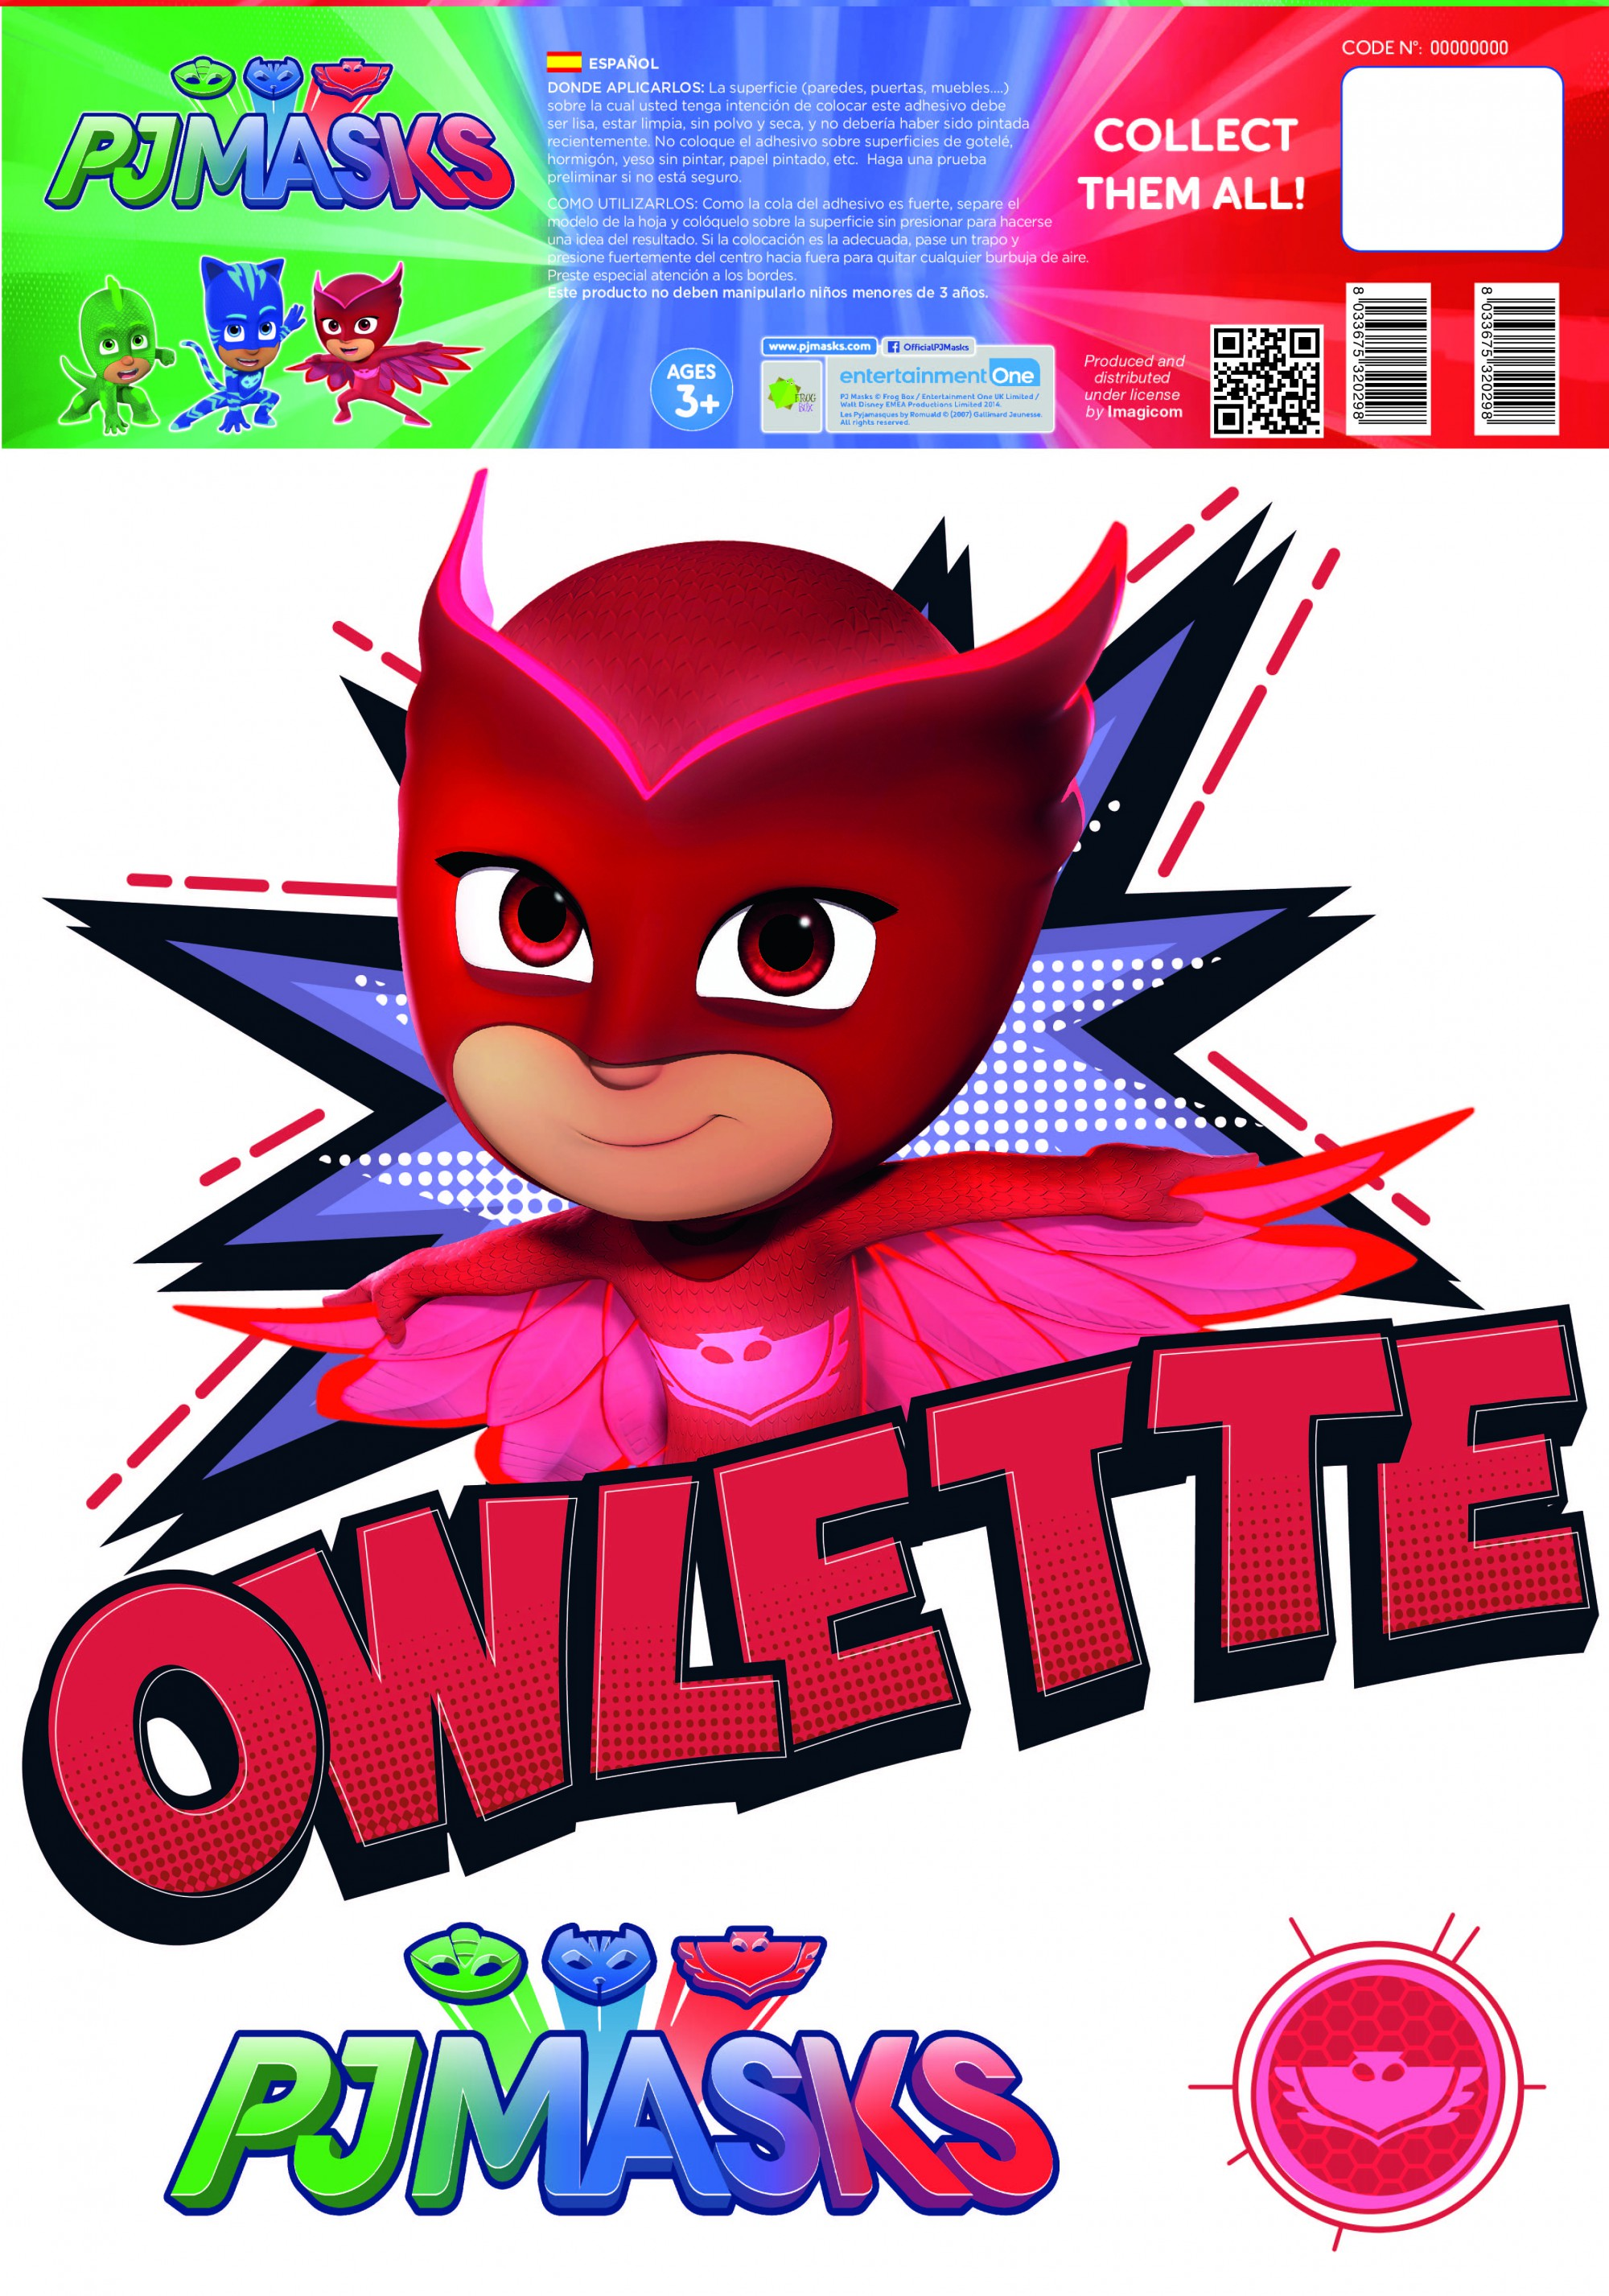 Pj Masks Owlette Wall Stickers And Decorations By Imagicom Imagicom # Muebles Novella